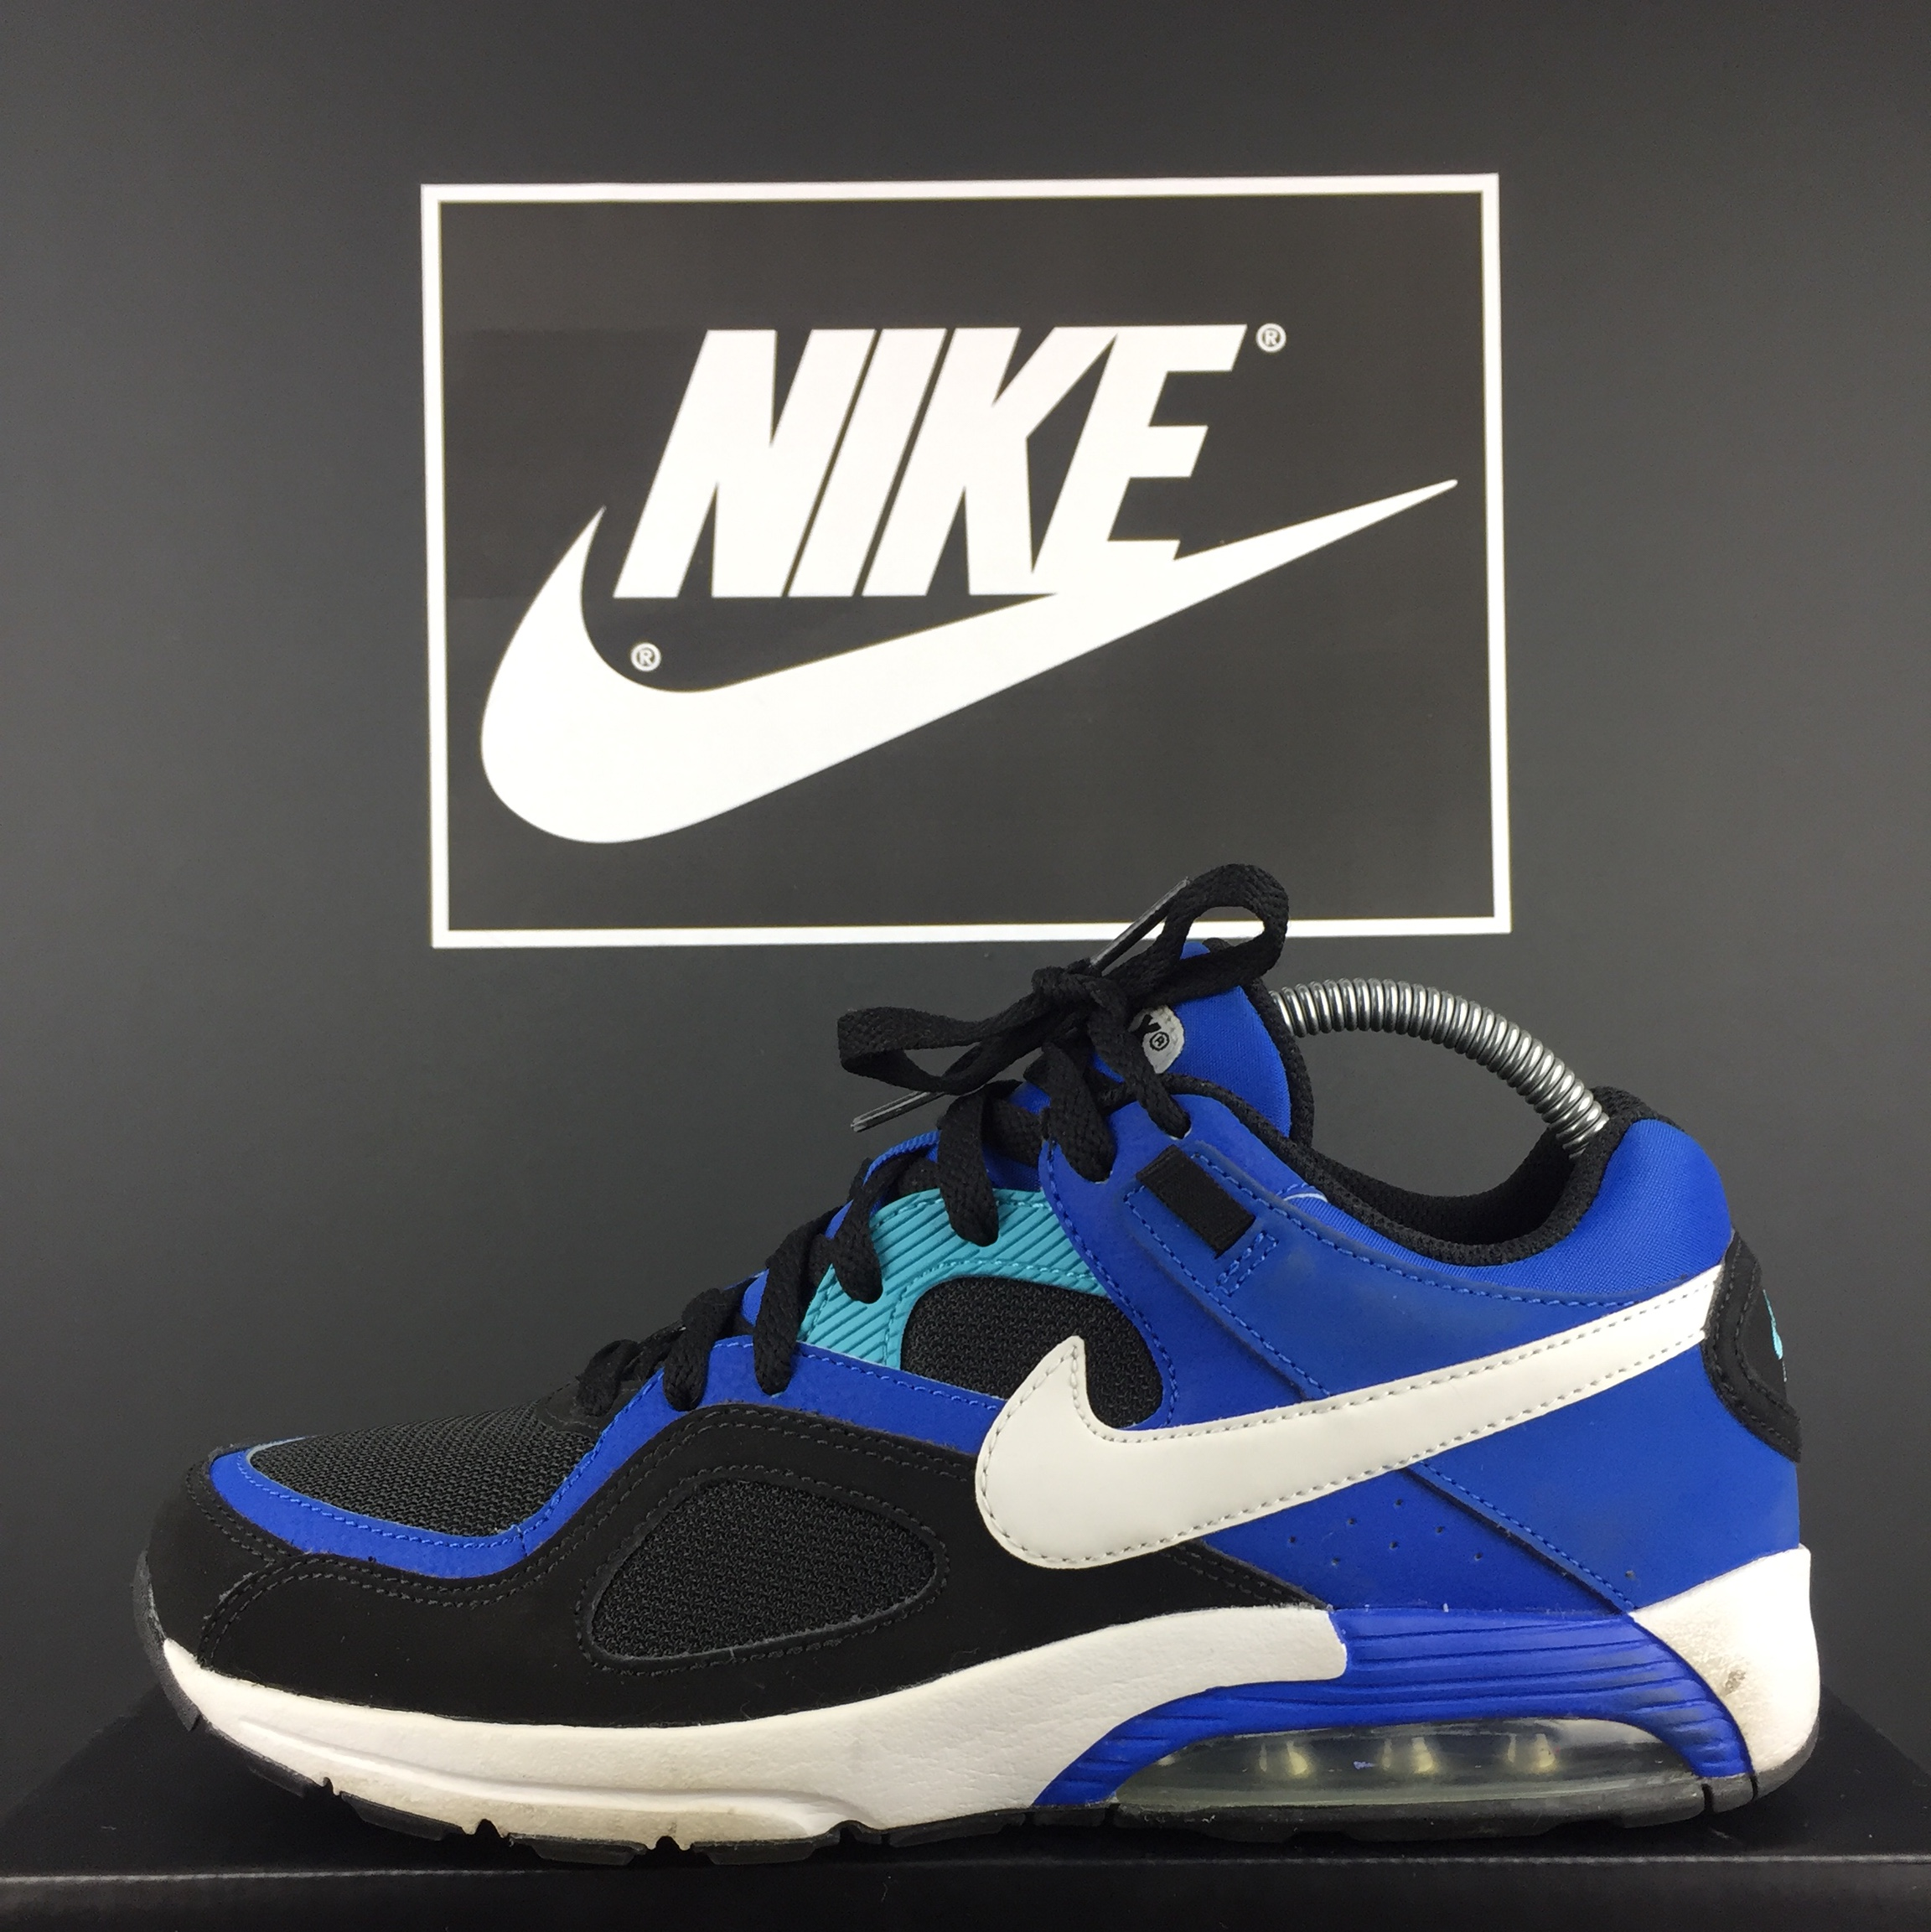 Todo el tiempo Volar cometa Indirecto  асимилация нередовен заемодател nike air max go strong -  kristysellarspoleartist.com